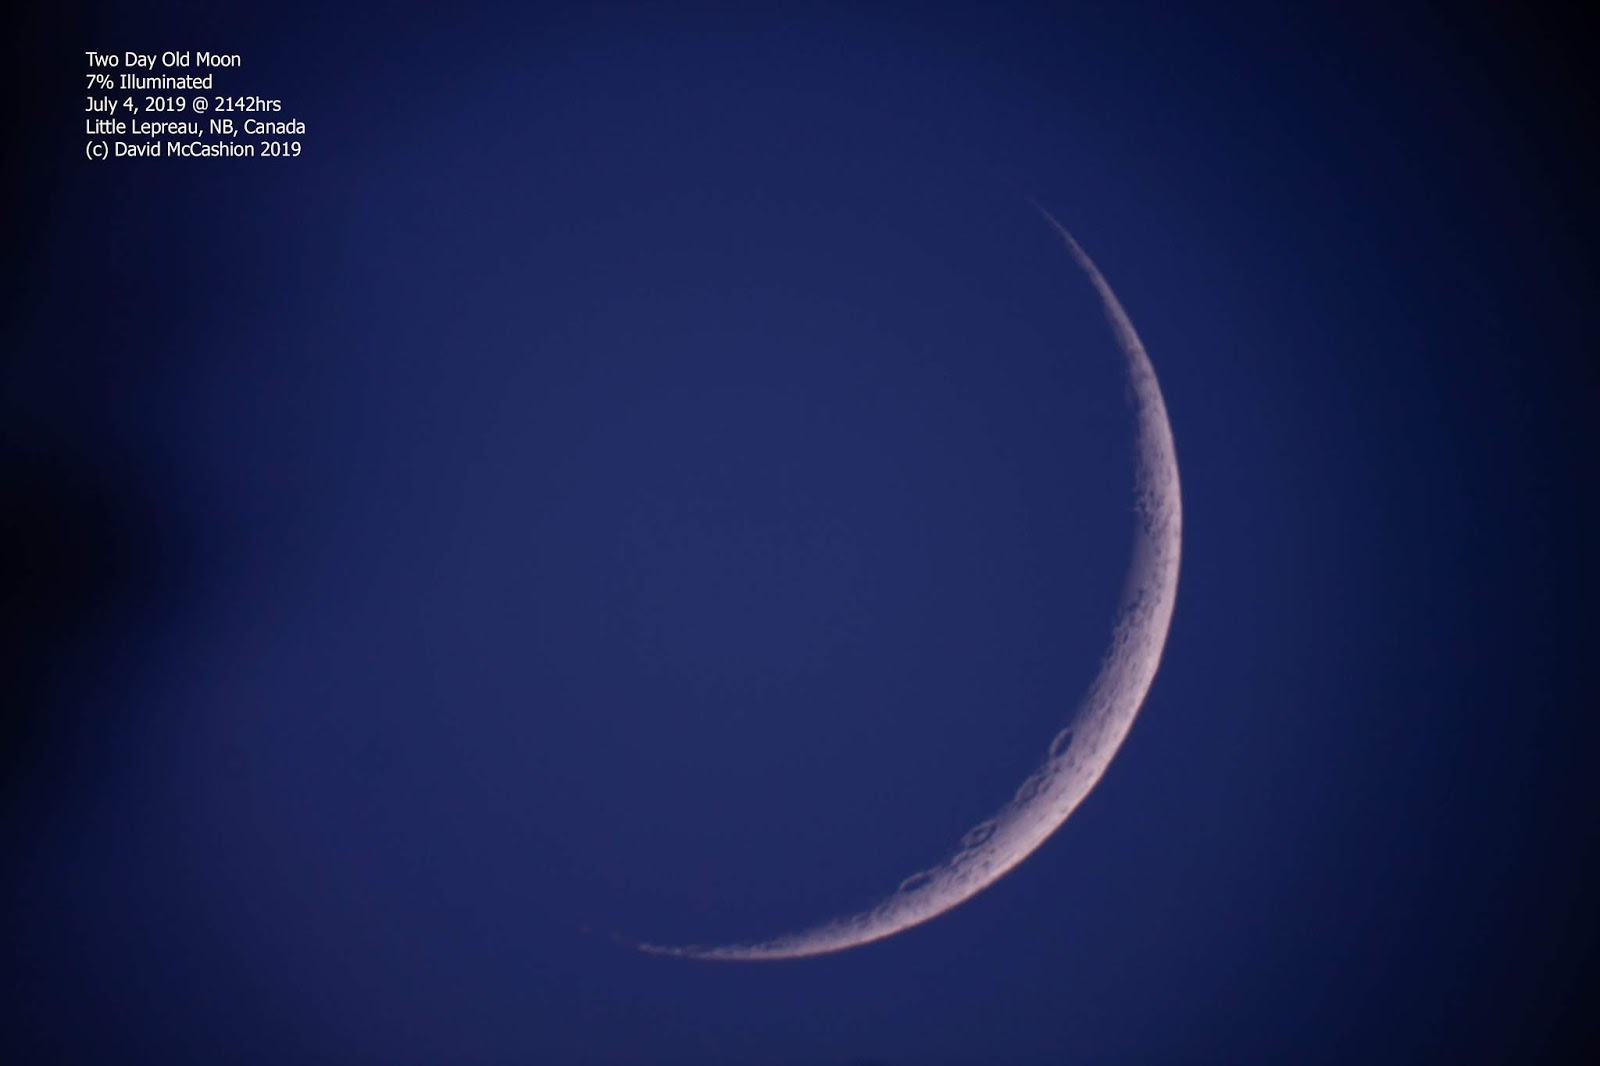 Astronomy Observing Reports: YOUNG MOON